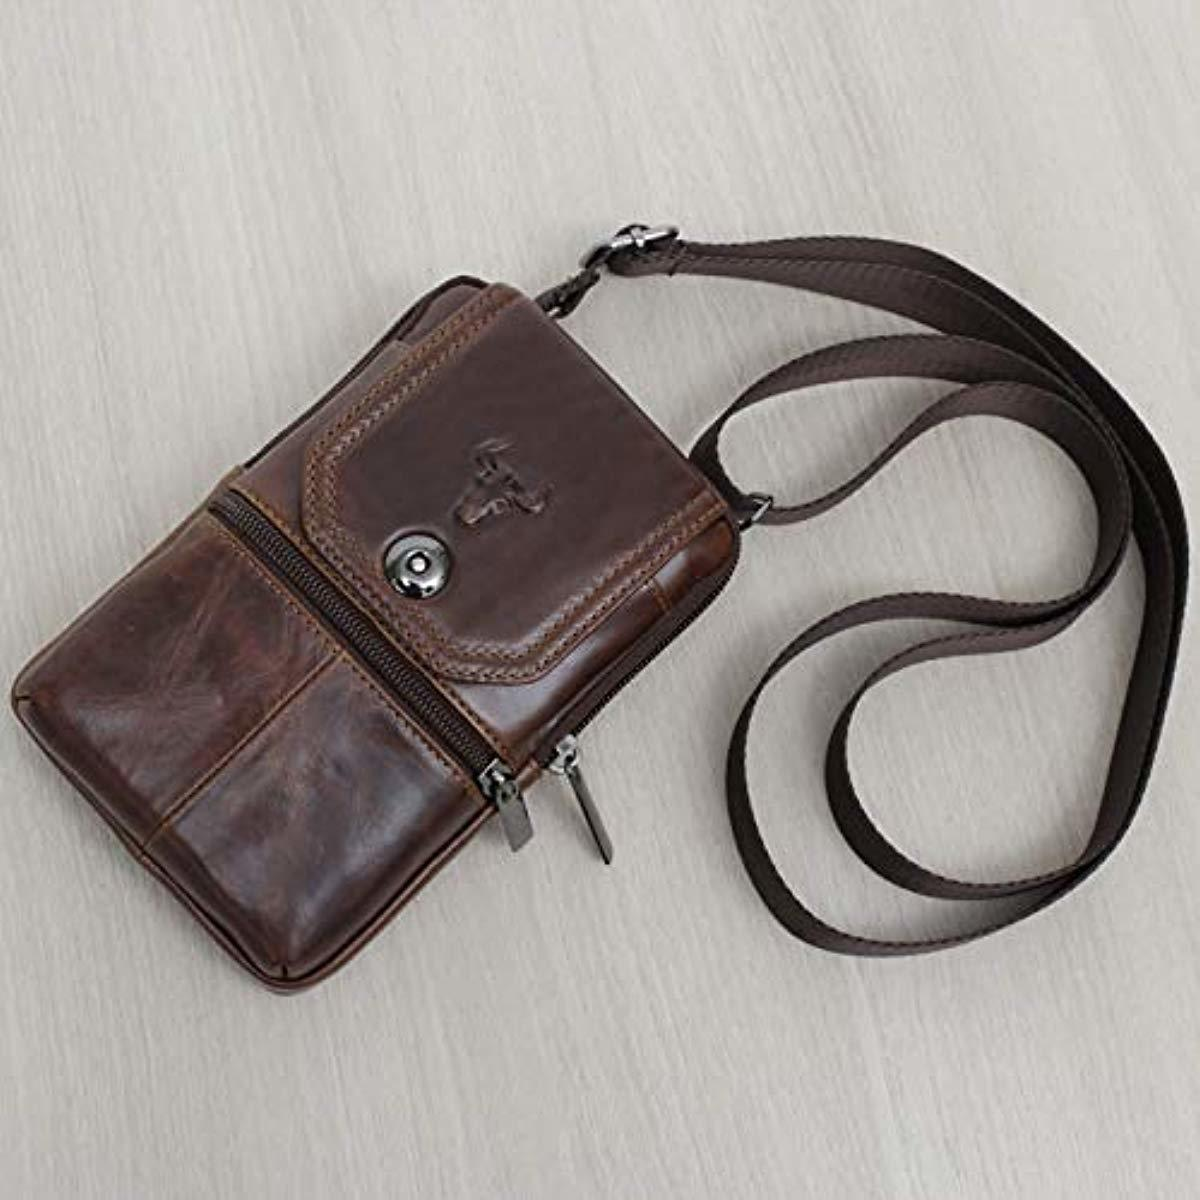 iPhone 11 Pro Max Leather Phone Bag Waist Pack Messenger Bags Leather Bag Travel Bags Cellphone Cases Holsters 9269 - ENCACC